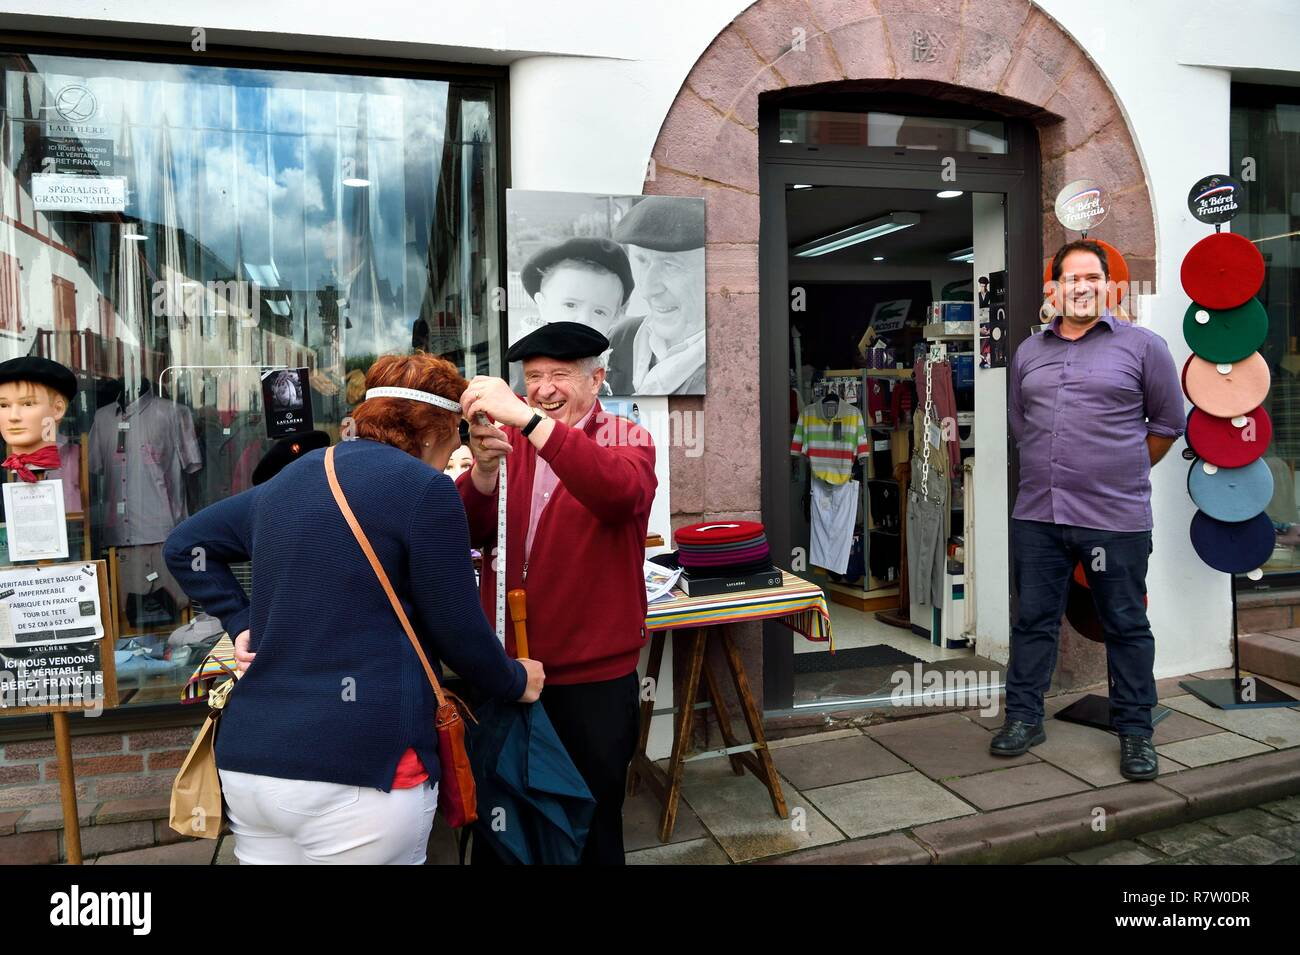 a45052ea45a2c Hat Store France Stock Photos   Hat Store France Stock Images - Alamy